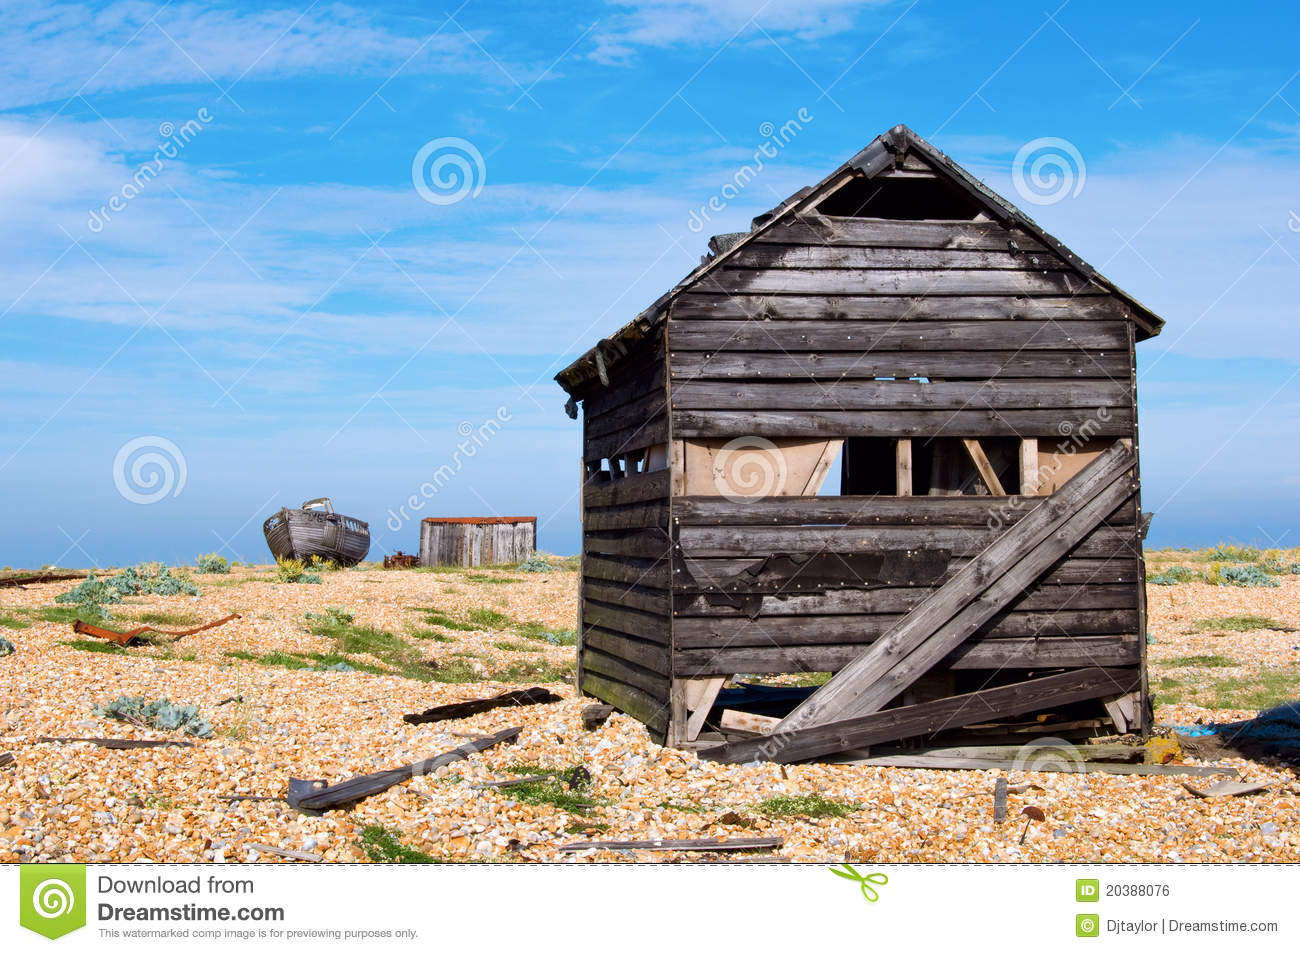 Old Shack Royalty Free Stock Image - Image: 20388076